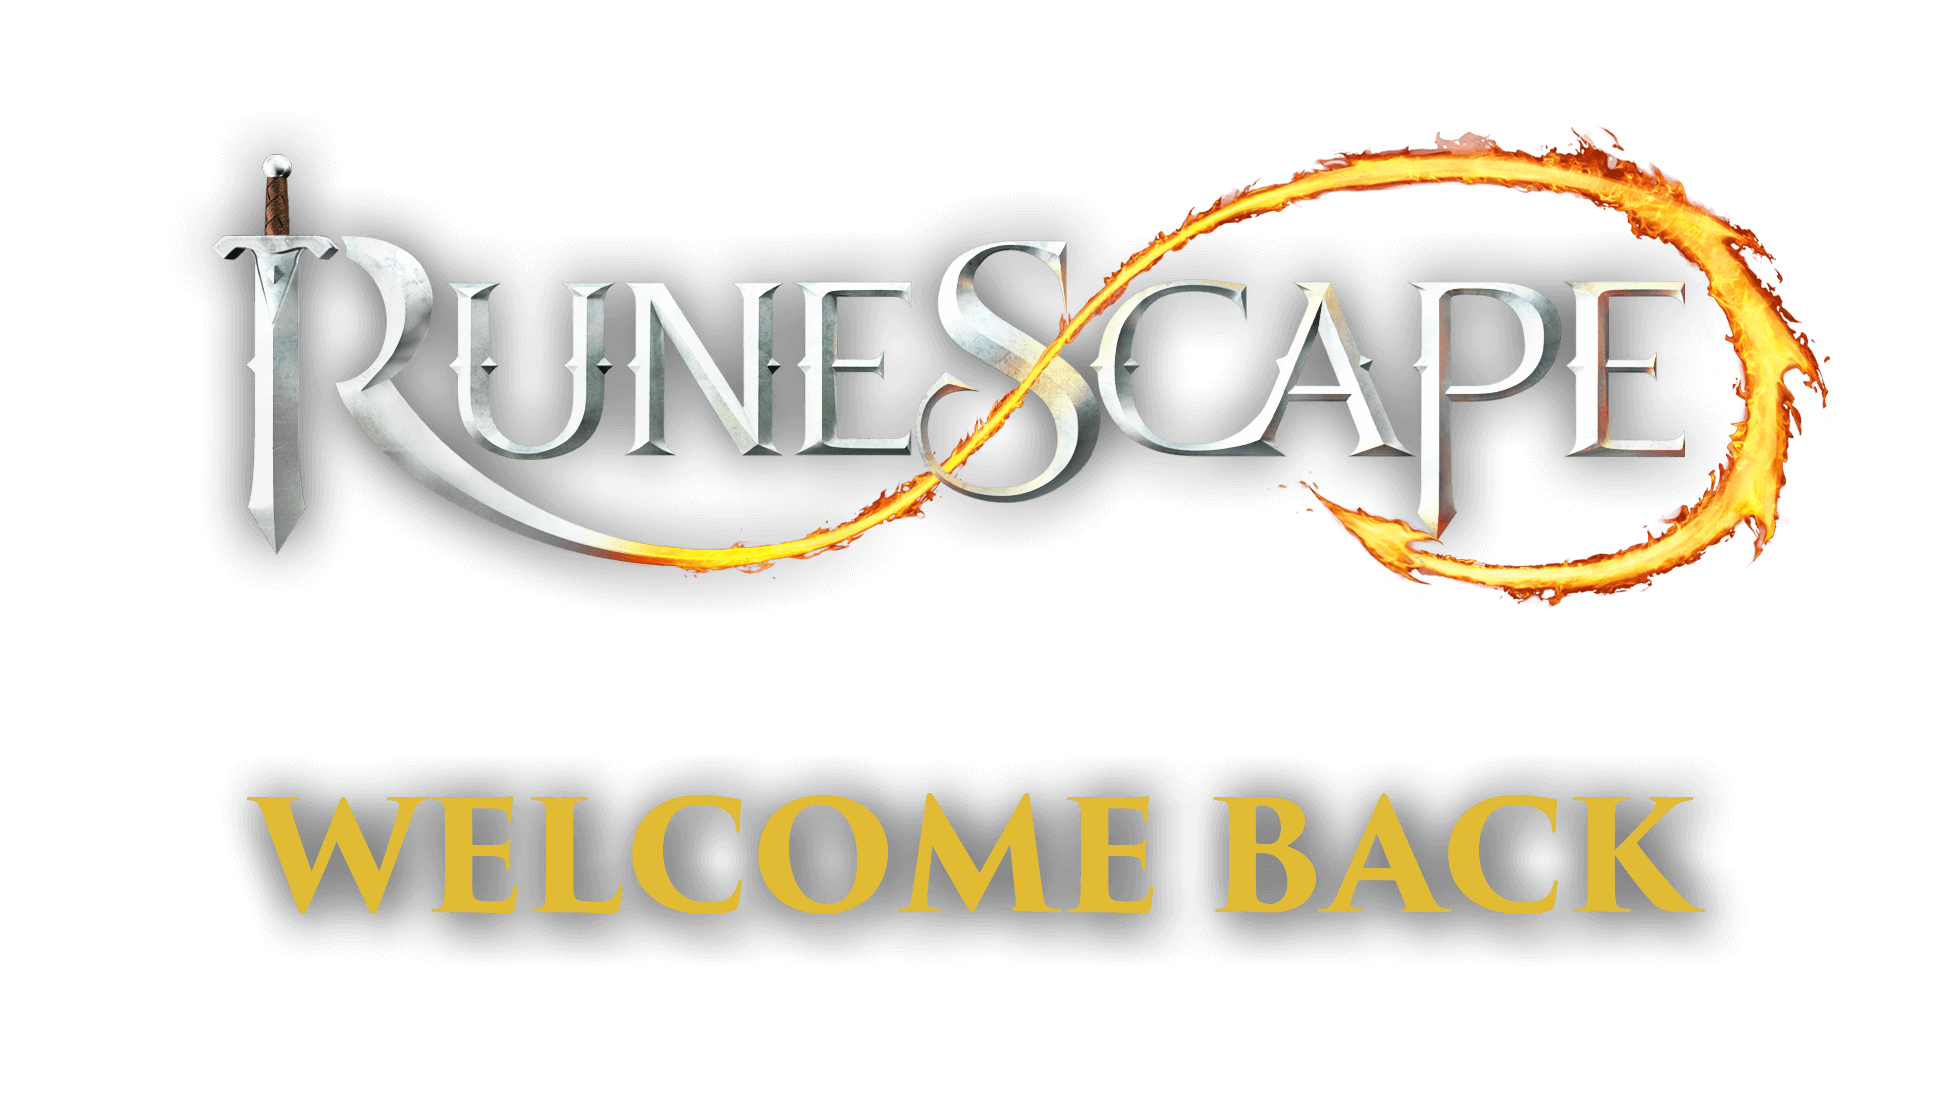 Returning to Runescape